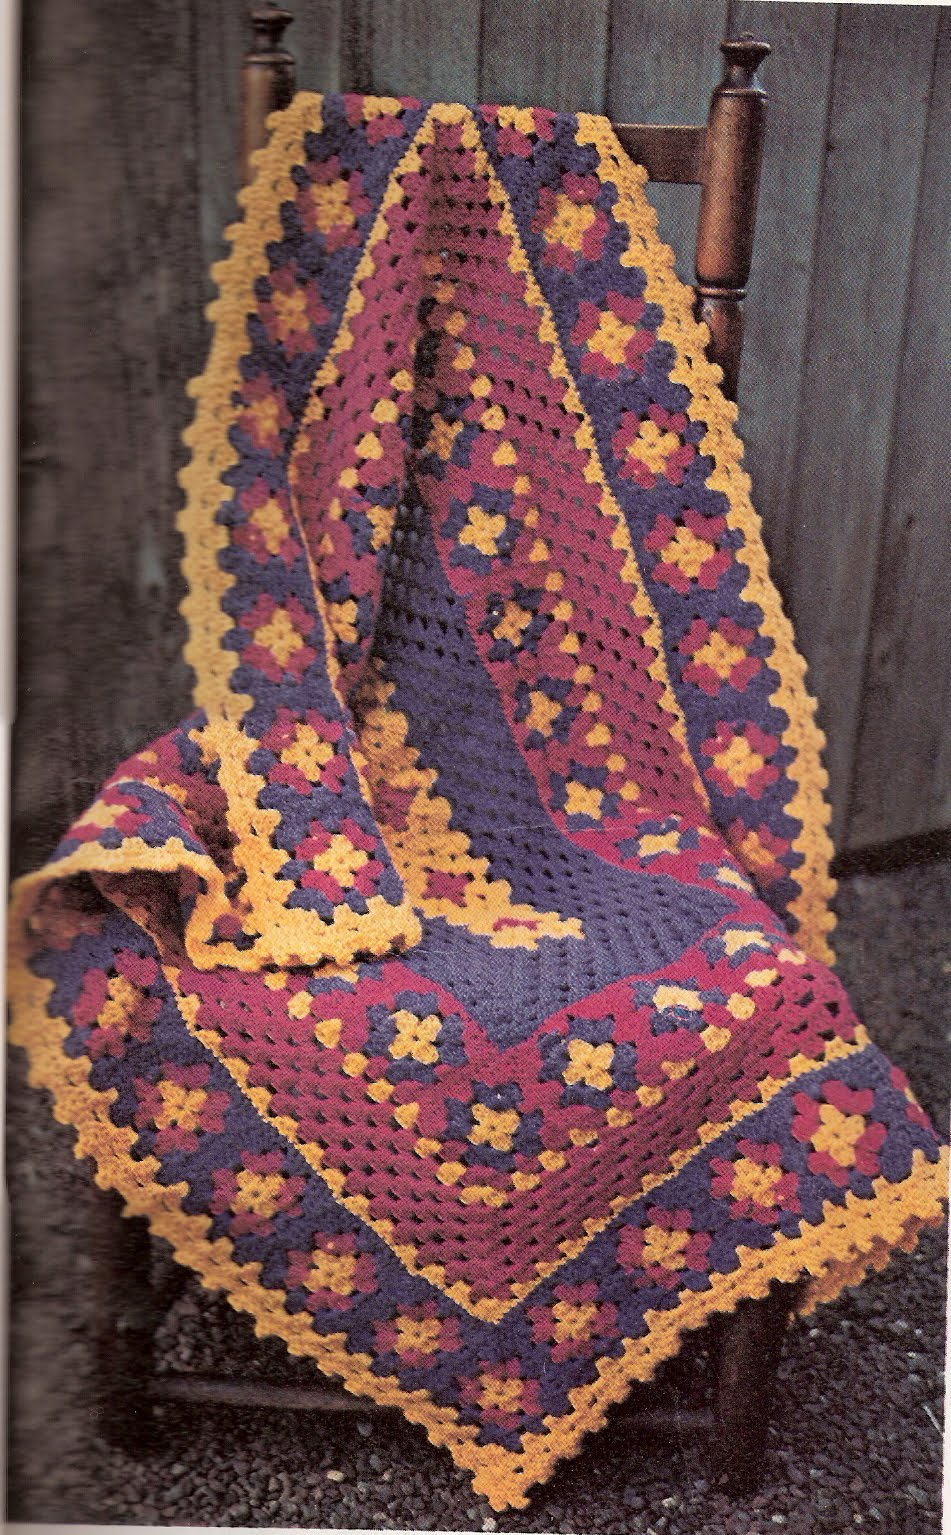 Free Baby Afghan Crochet Patterns : crochet blanket crochet blanket pattern crochet blanket patterns ...